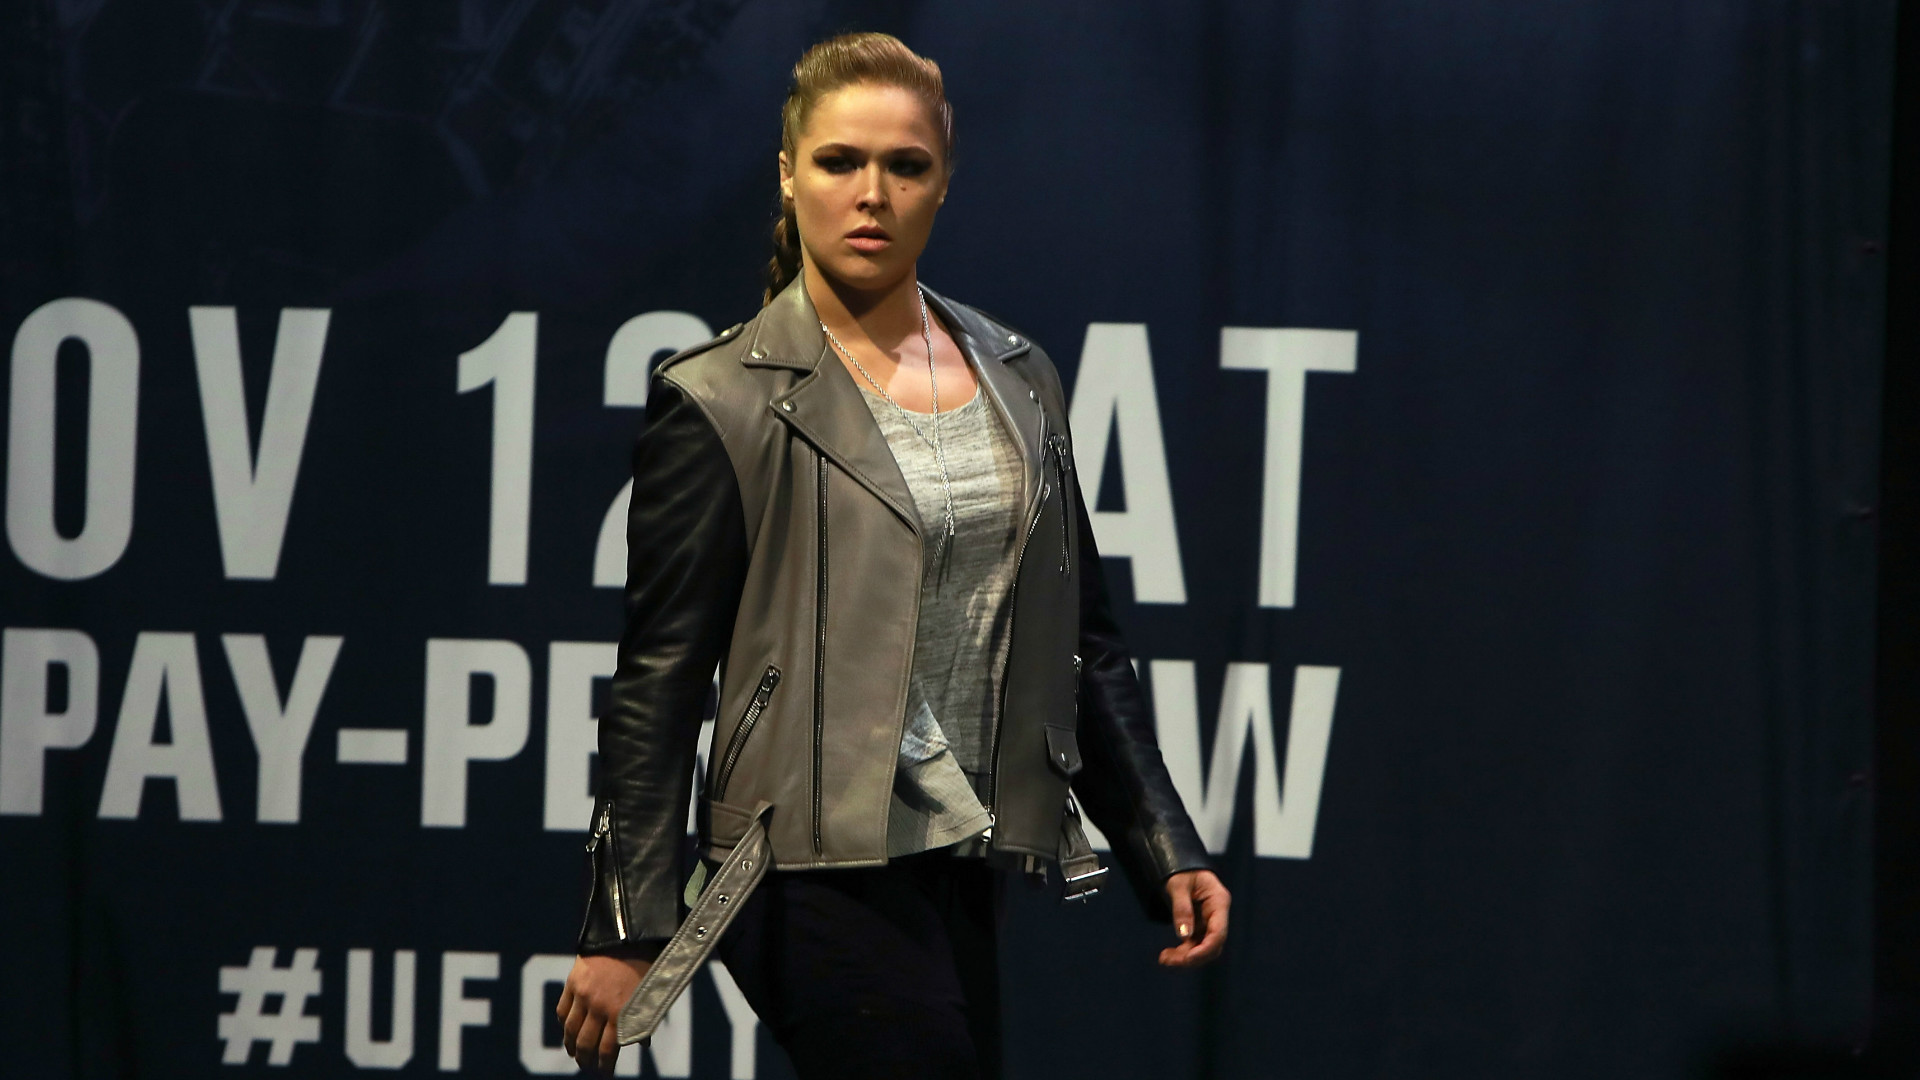 Rhonda Rousey in the UFC.